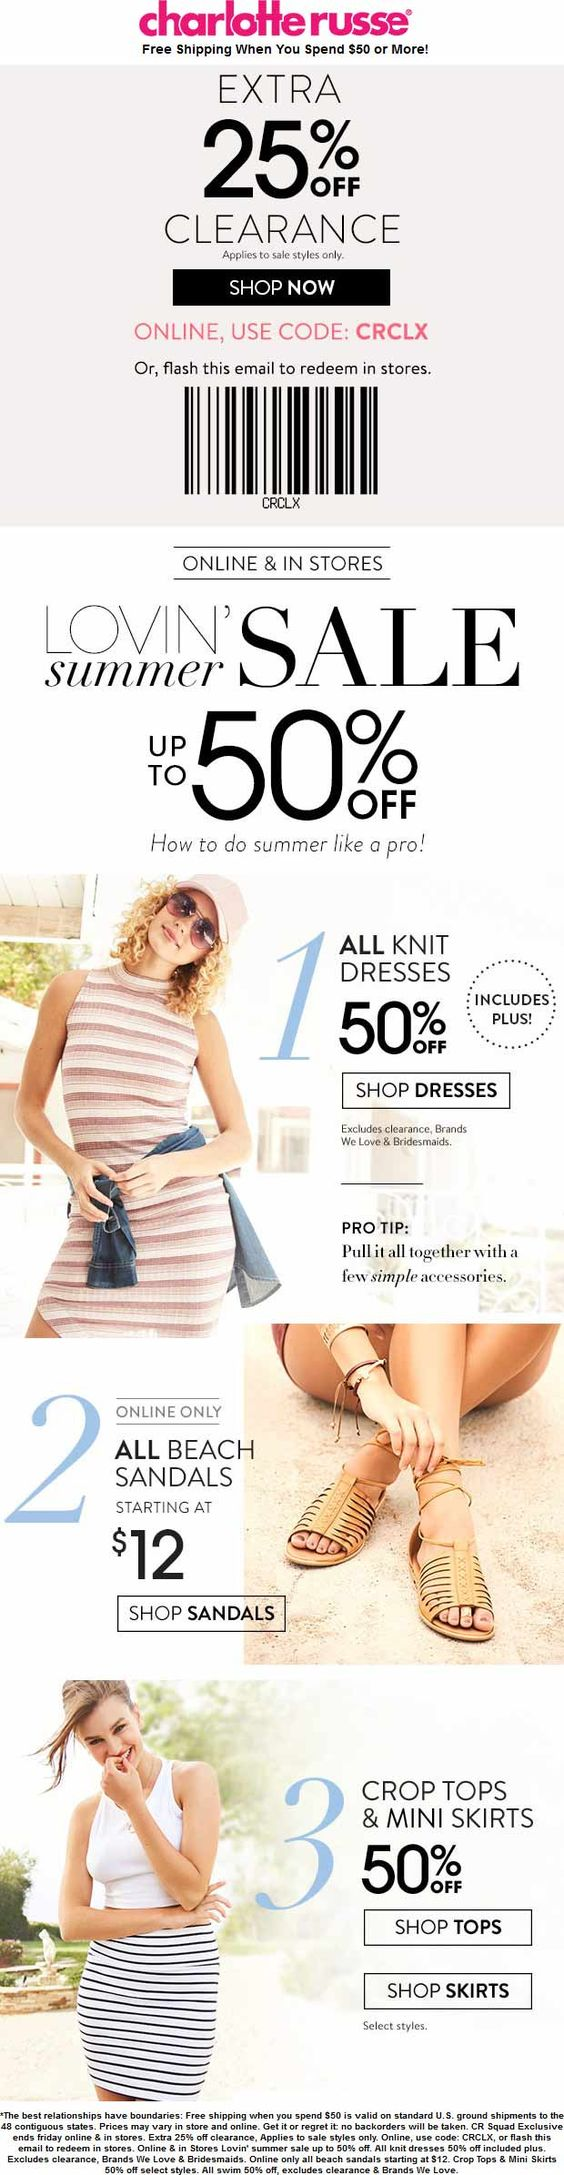 Pinned June 23rd: Extra 25% off clearance & more at #CharlotteRusse or online via promo code CRCLX #TheCouponsApp